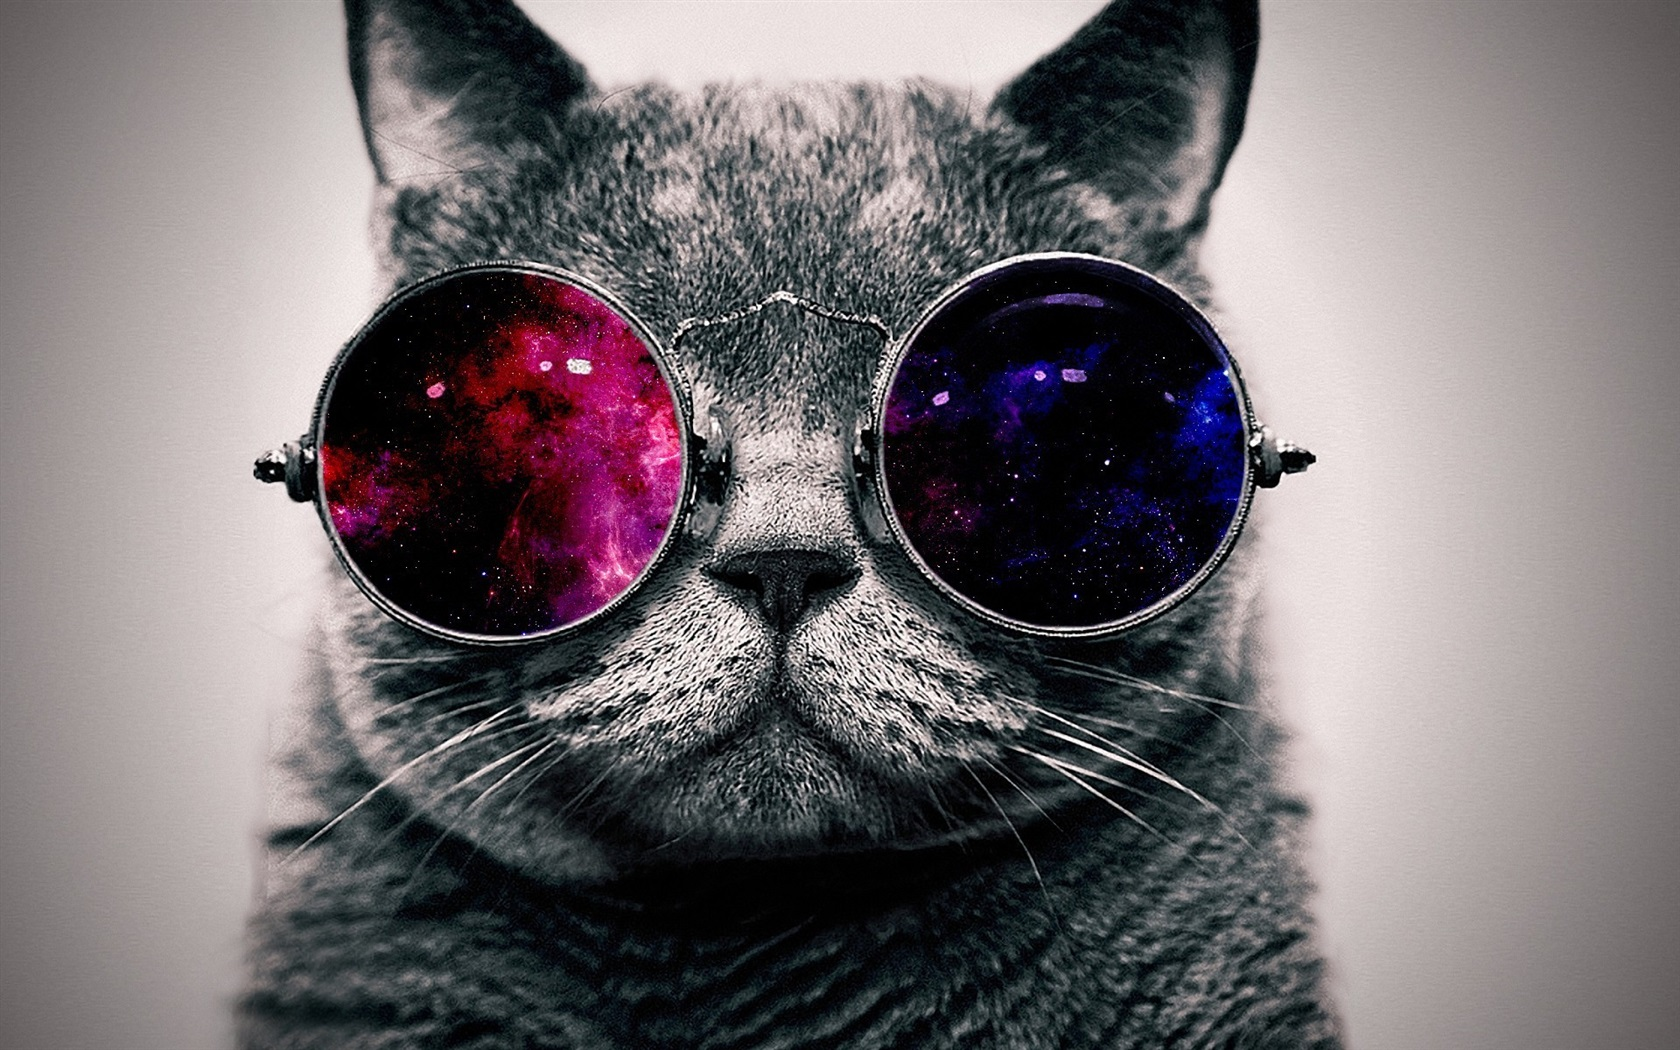 Cute cat with sunglass, very cool Wallpaper | 1680x1050 ...